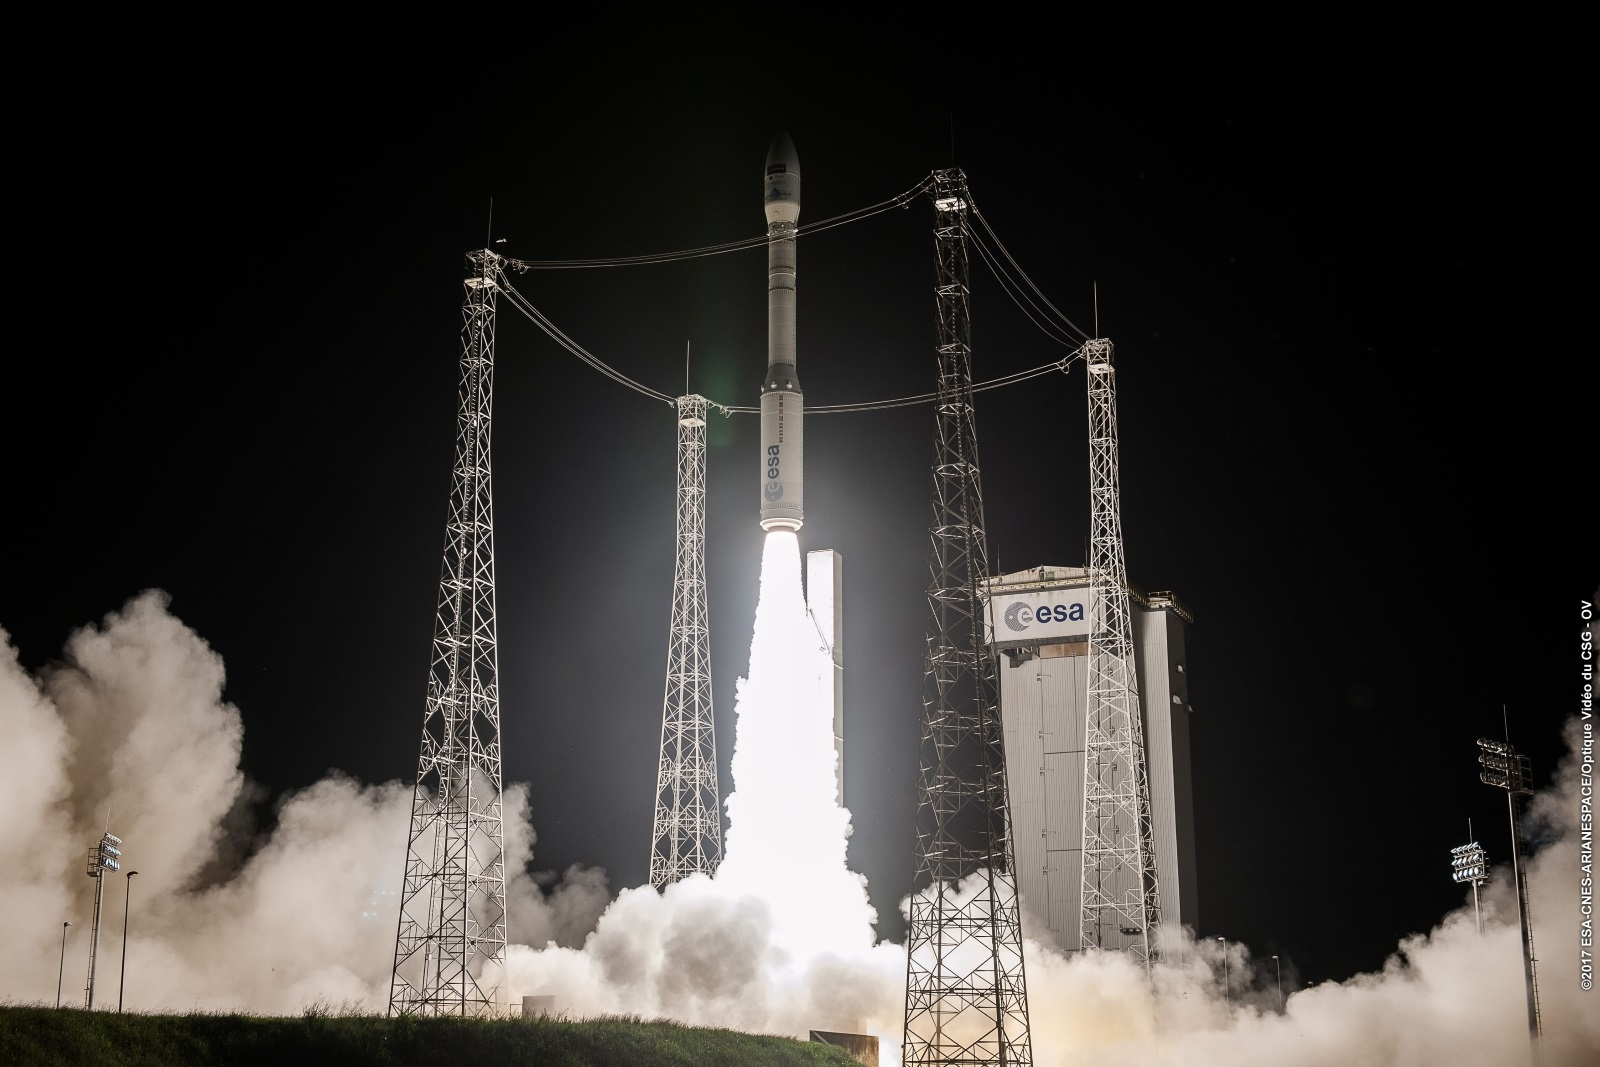 Arianespace's Vega rocket fails for the first time